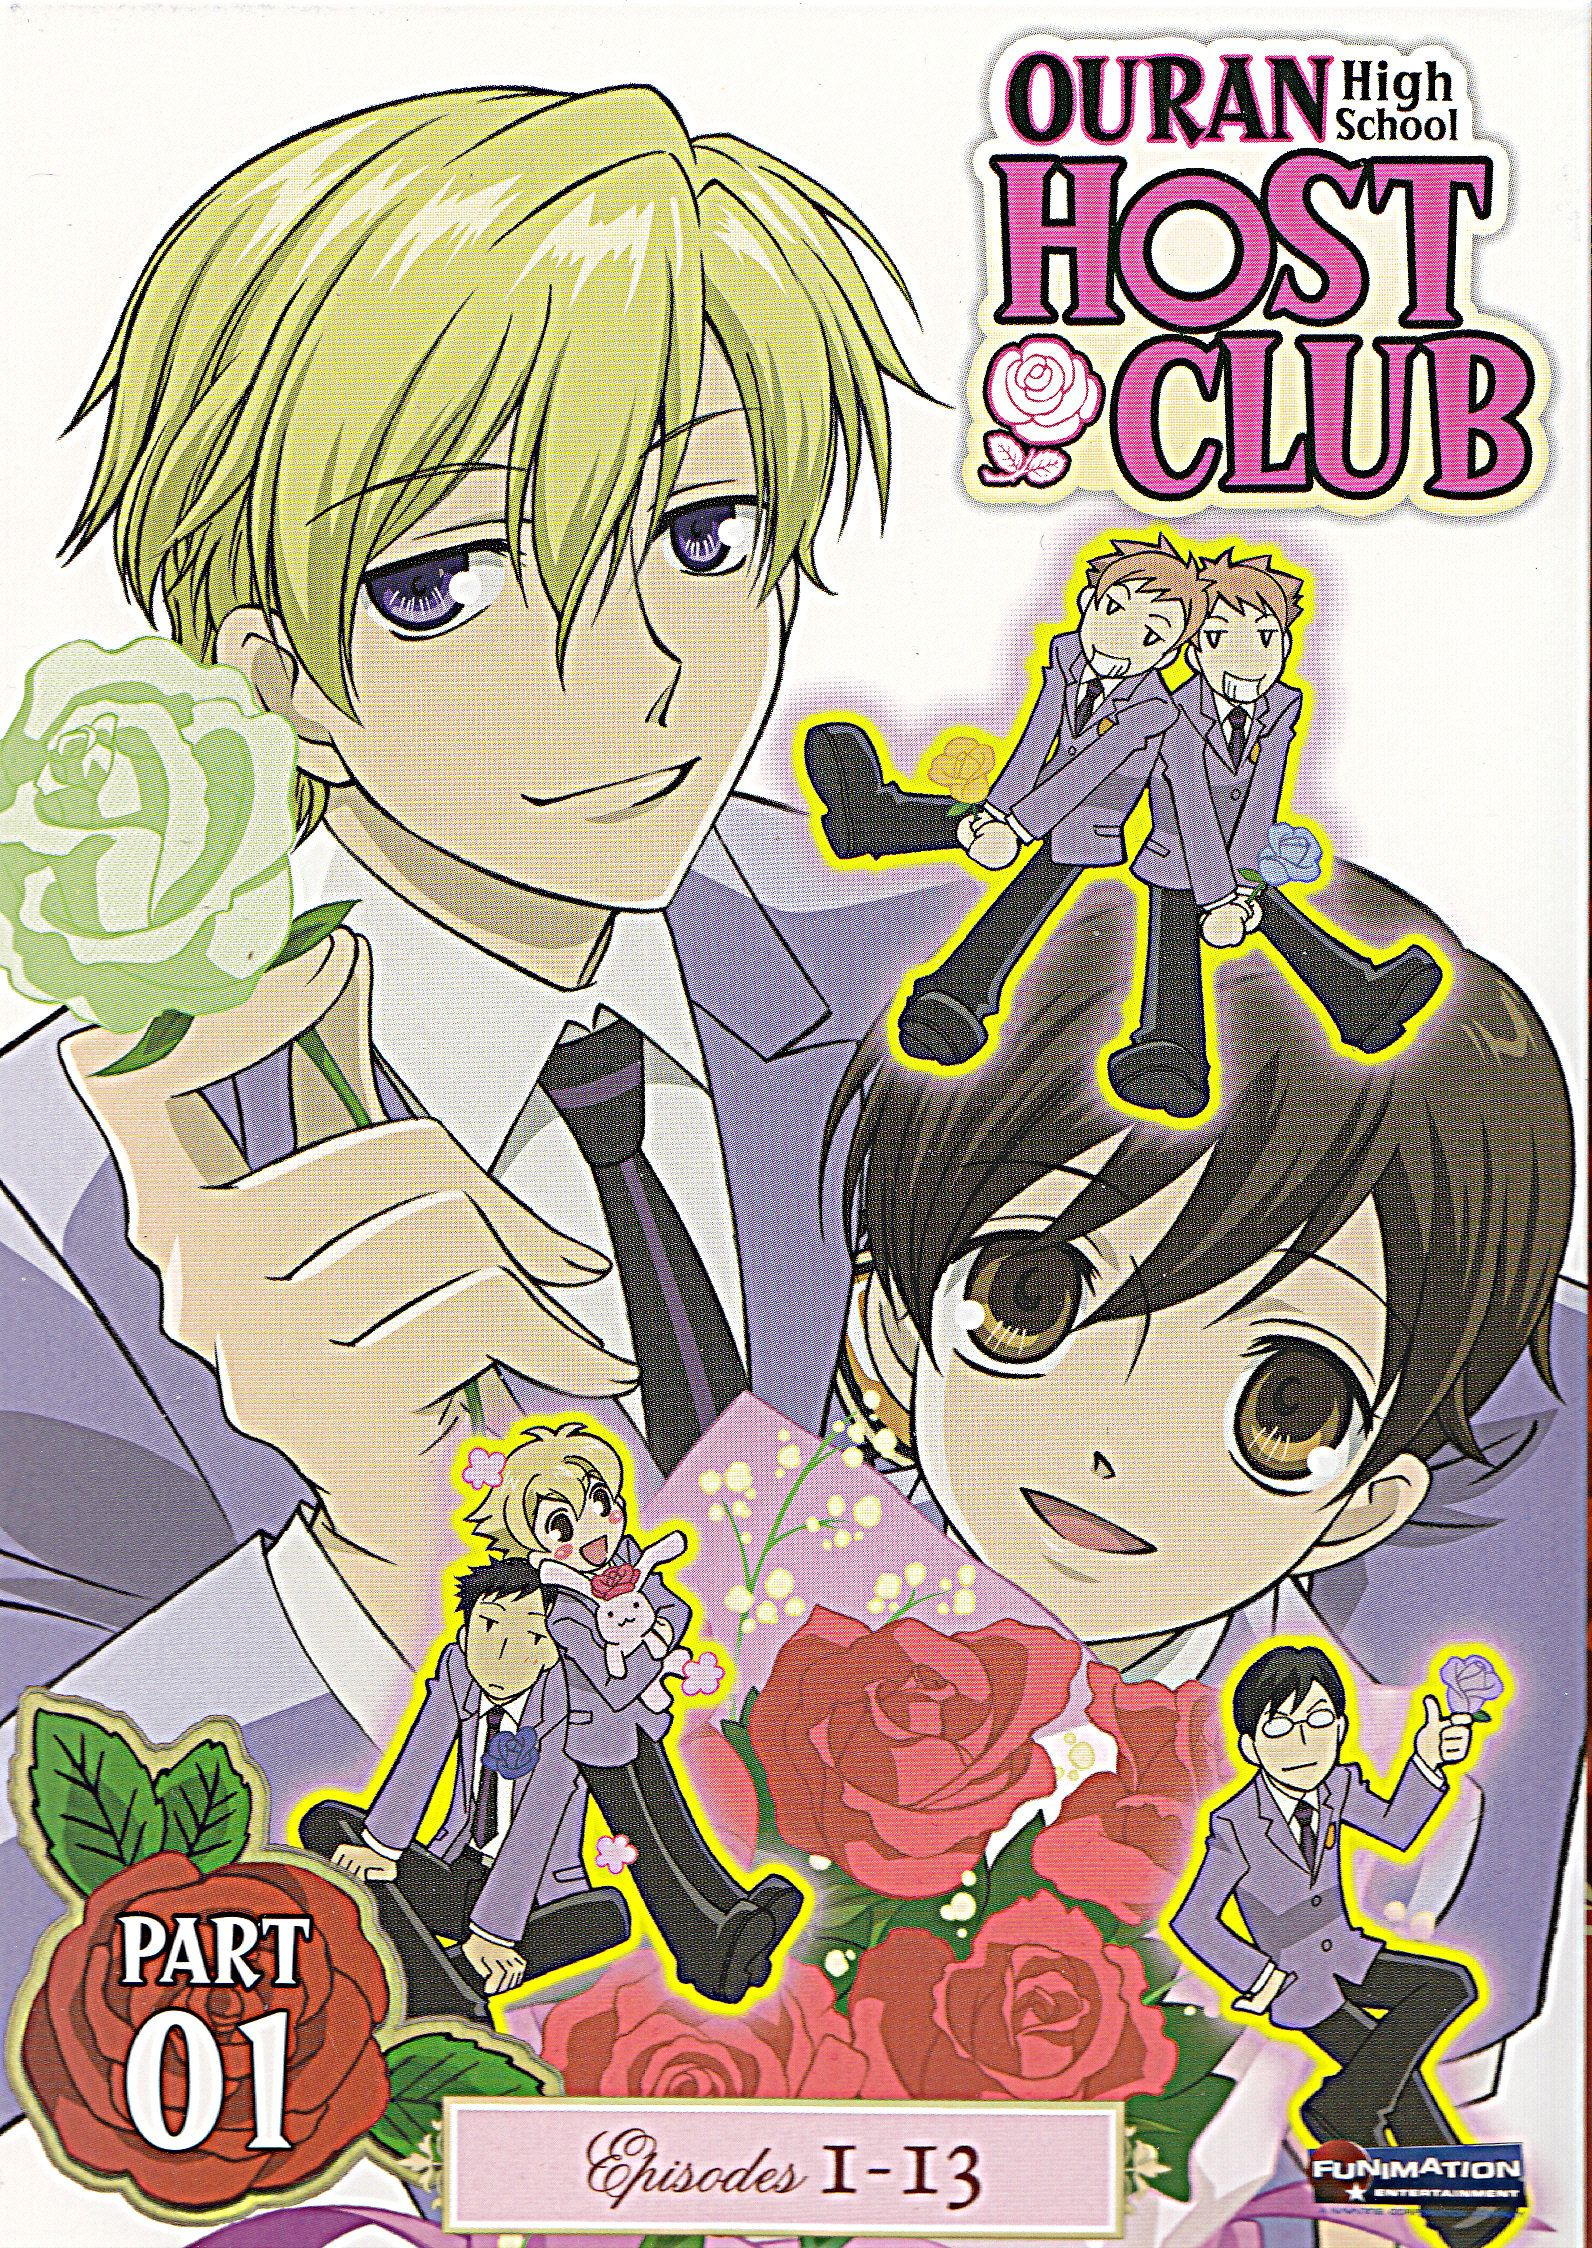 Ouran High School Host Club Anime Review High school